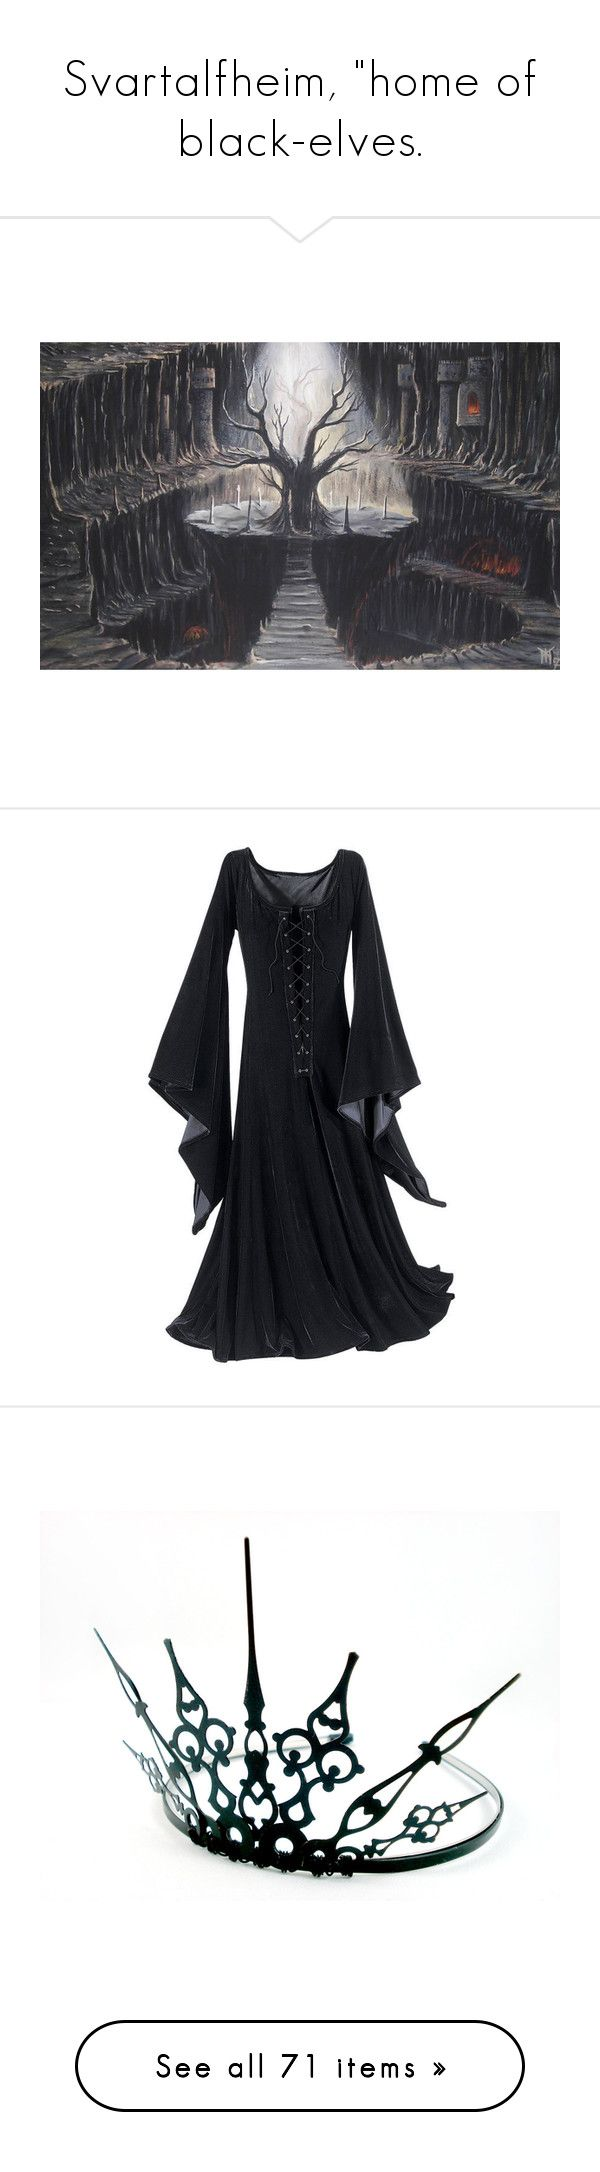 """Svartalfheim, ""home of black-elves."" by lillian-pandola ❤ liked on Polyvore featuring costumes, dresses, gowns, halloween, dark witch costume, witch halloween costume, salem witch costume, witch costume, dark costume and accessories"